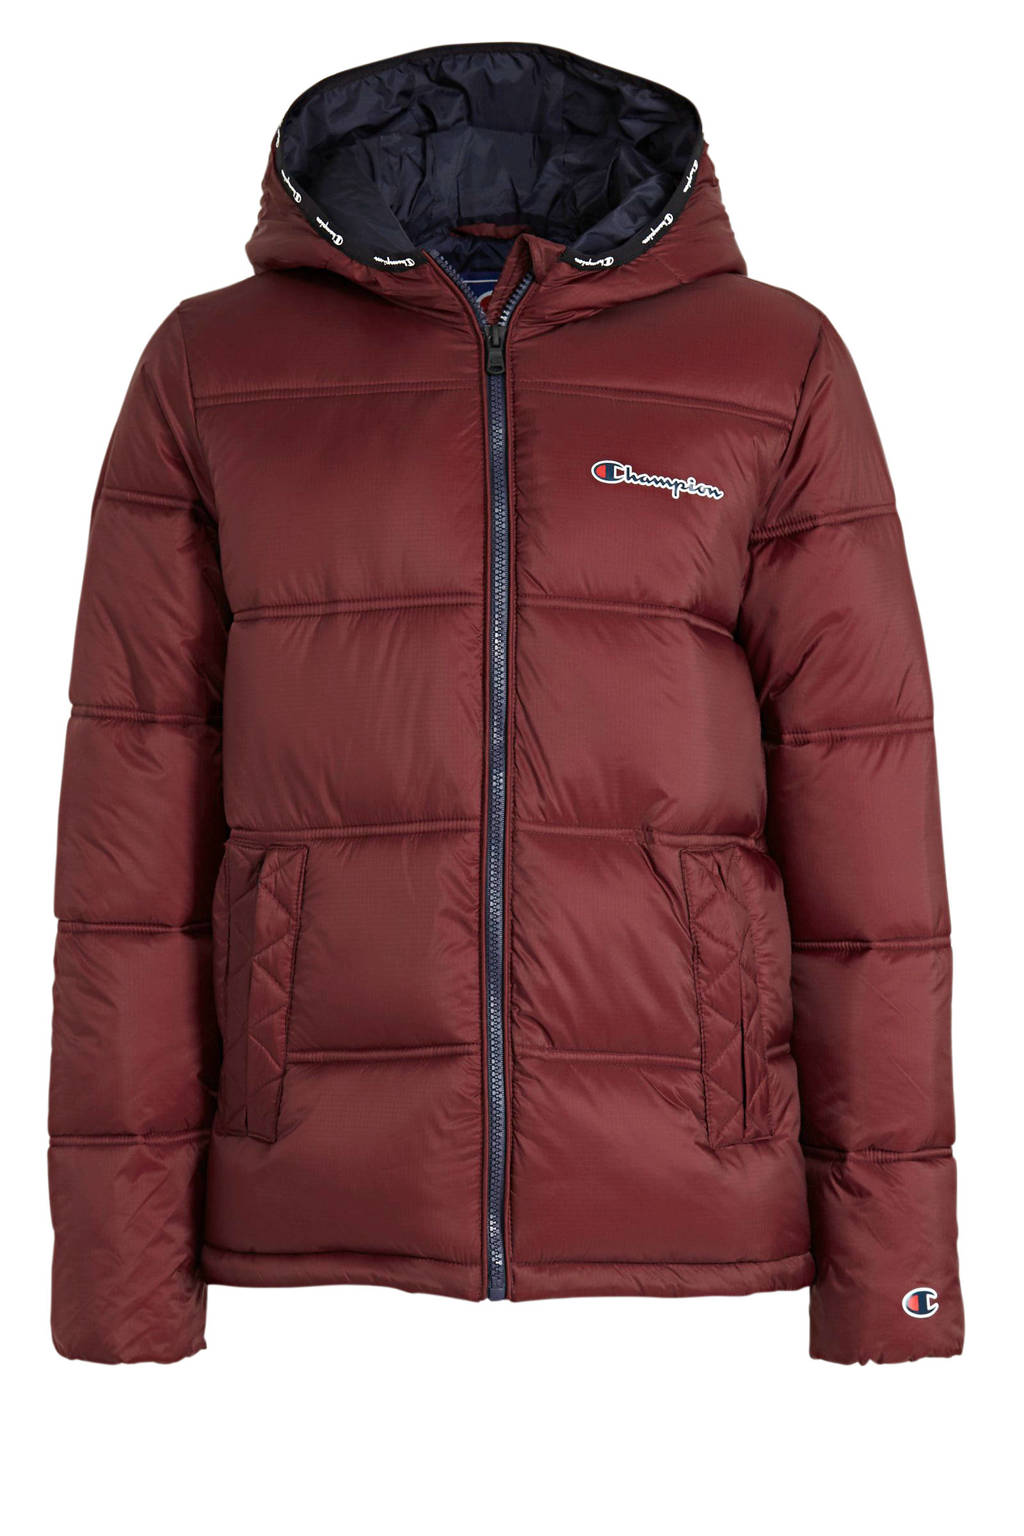 Champion winterjas met logo donkerrood, Donkerrood